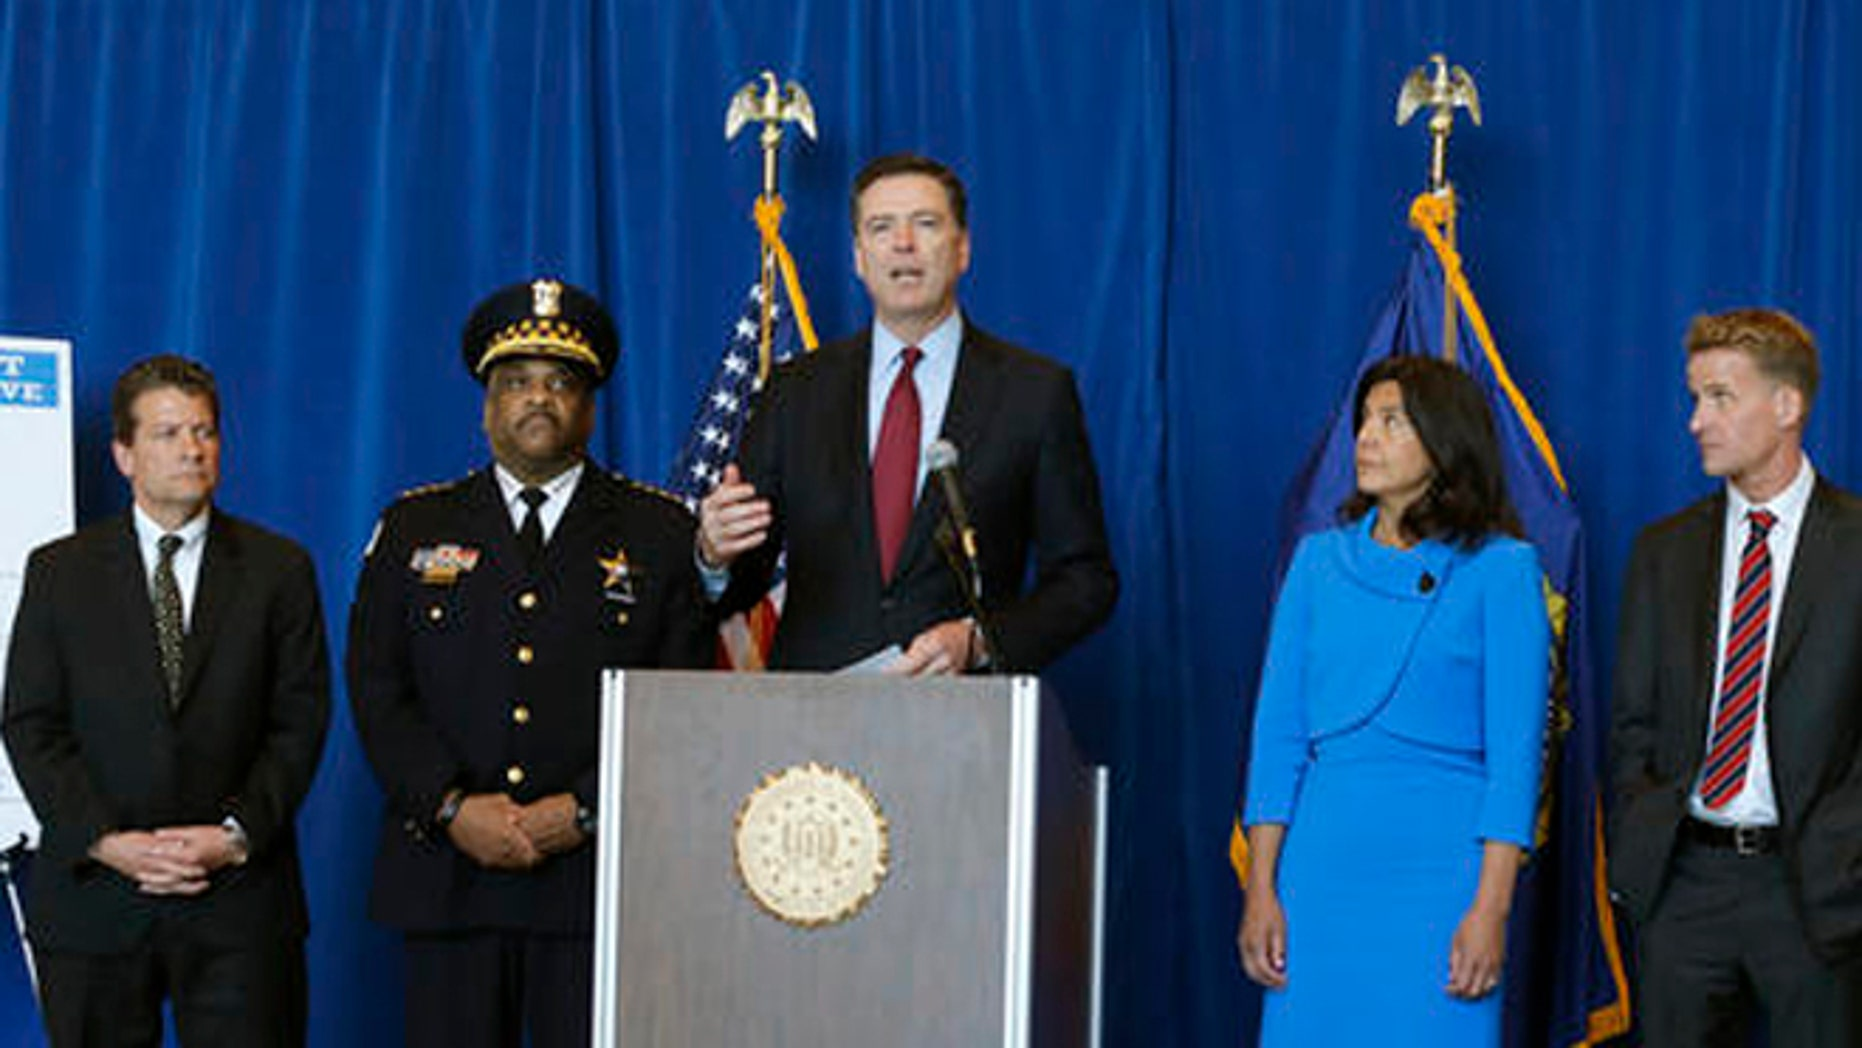 FBI Director James B. Comey, center, announces the addition of Luis Macedo to the bureau's ten most wanted list during a news conference, Thursday, May 19, 2016, in Chicago.